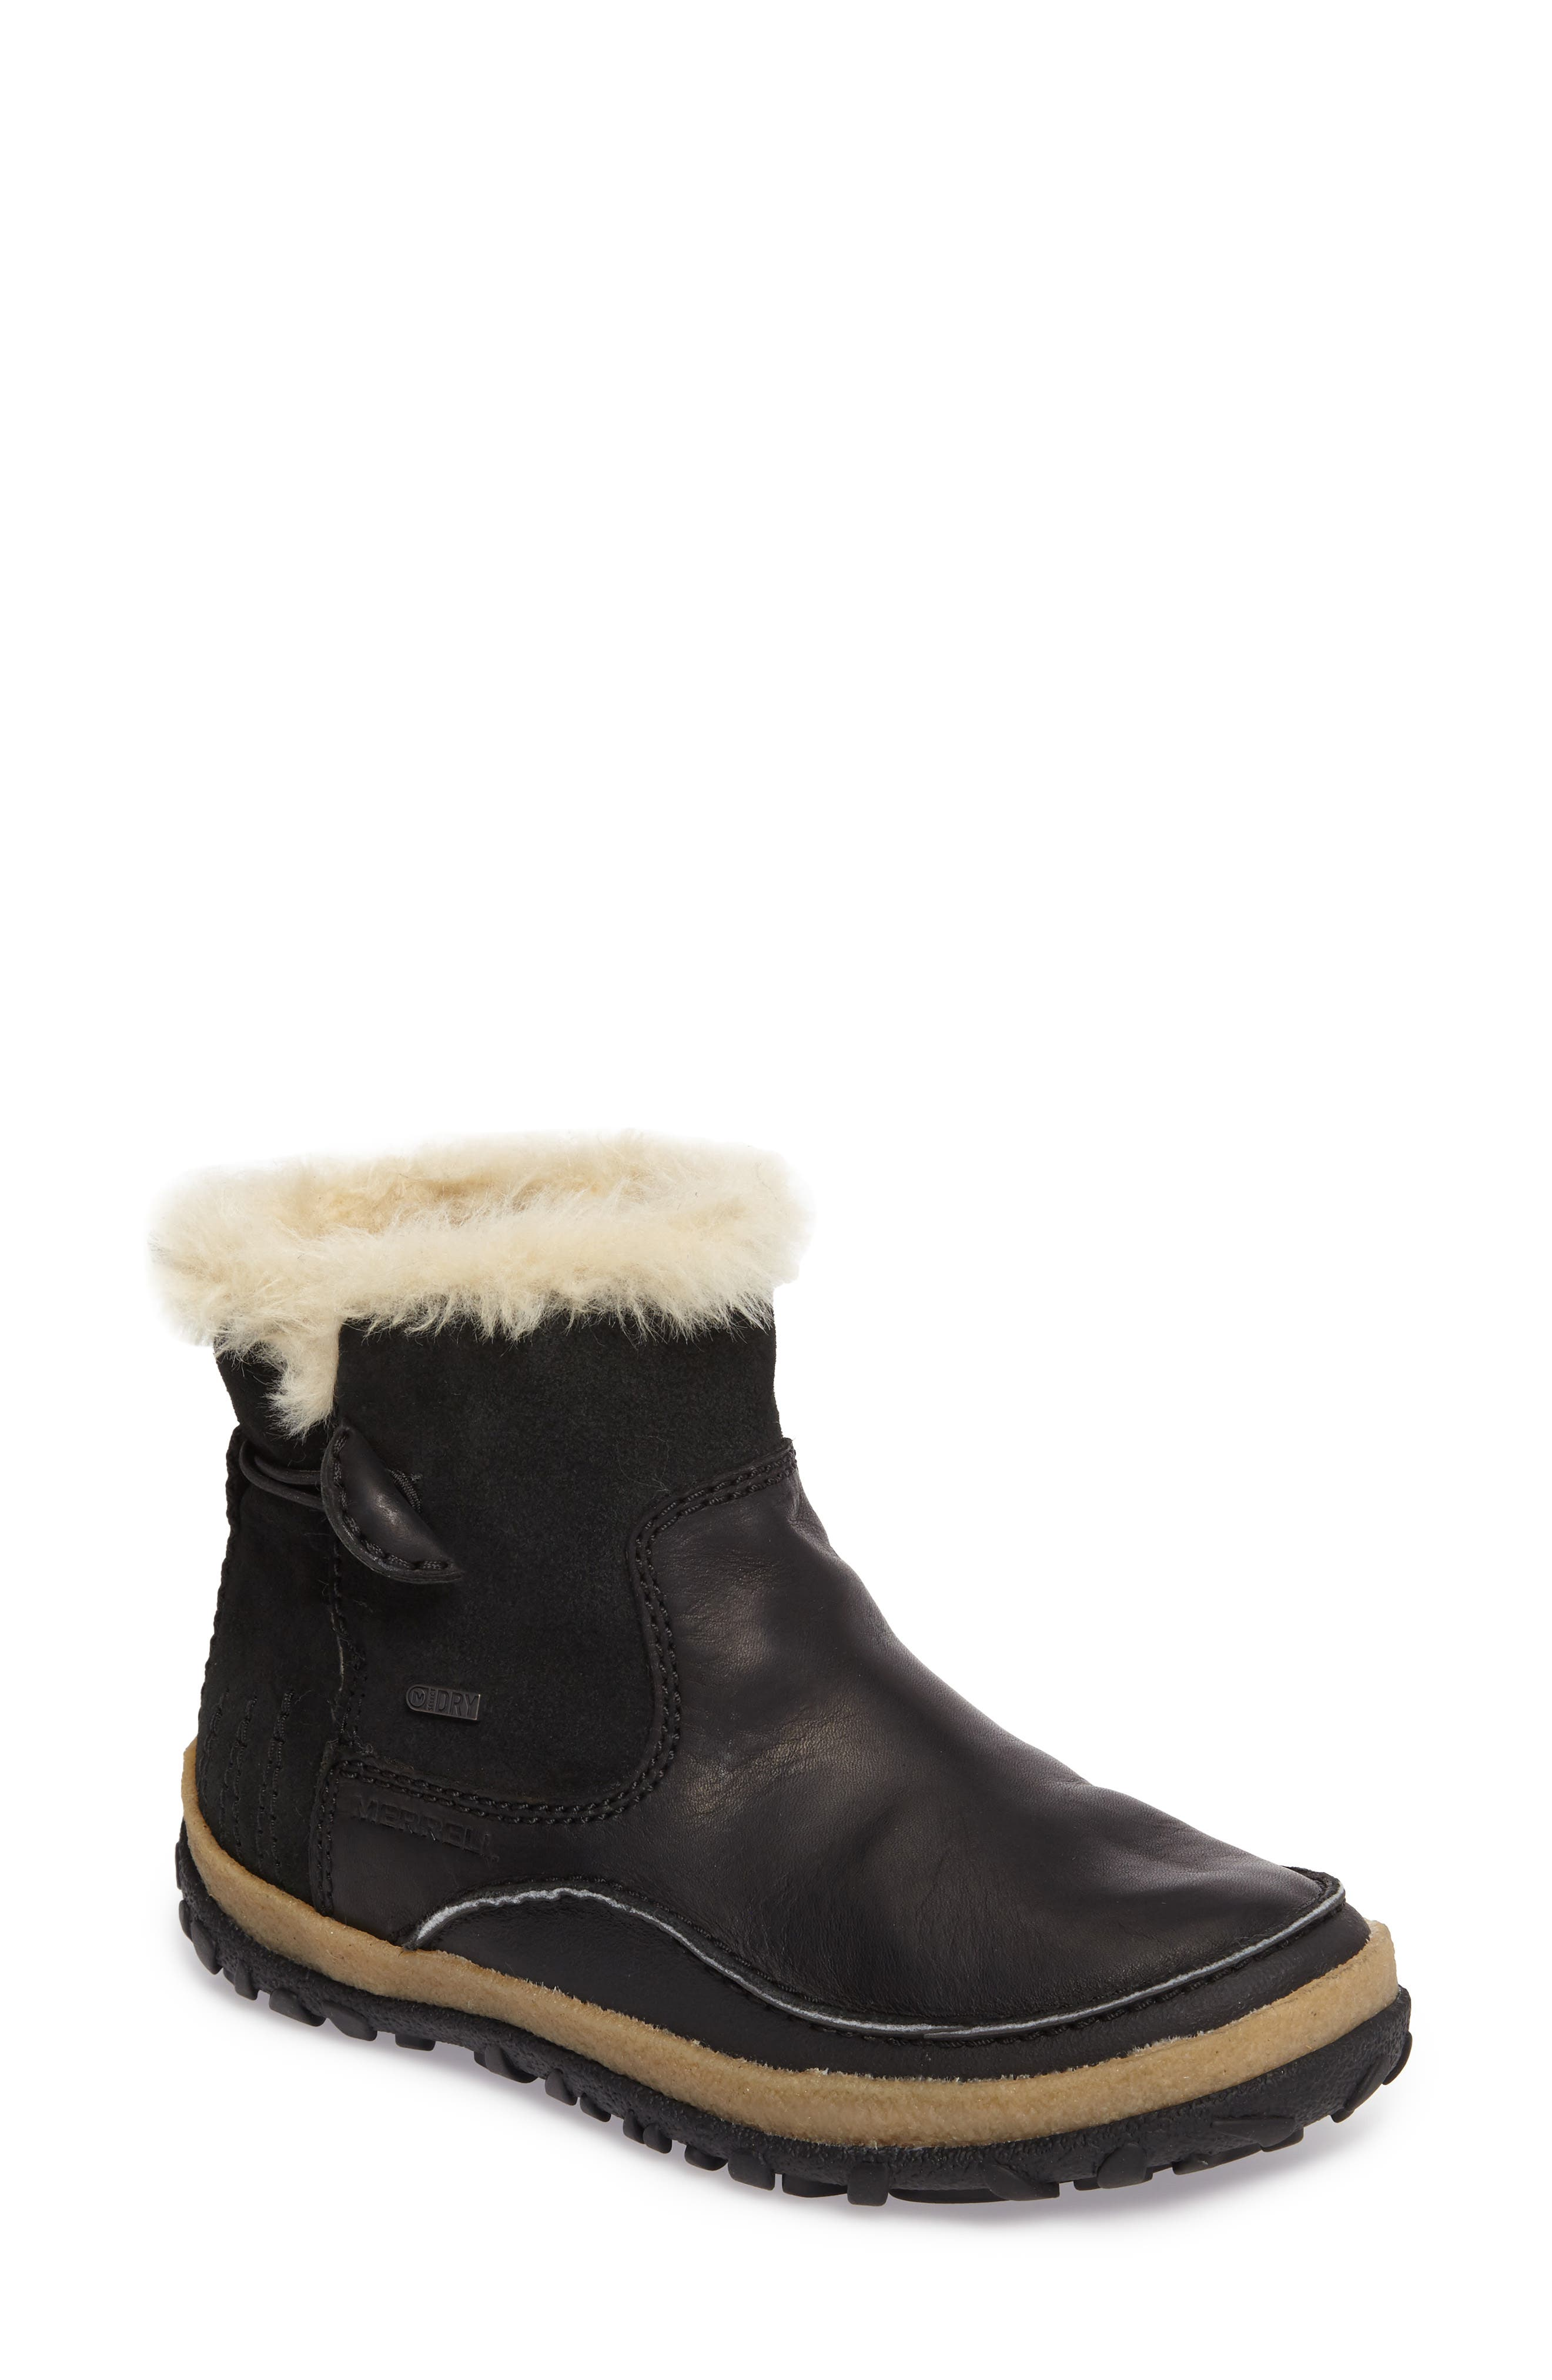 Tremblant Pull-On Polar Waterproof Bootie,                         Main,                         color,